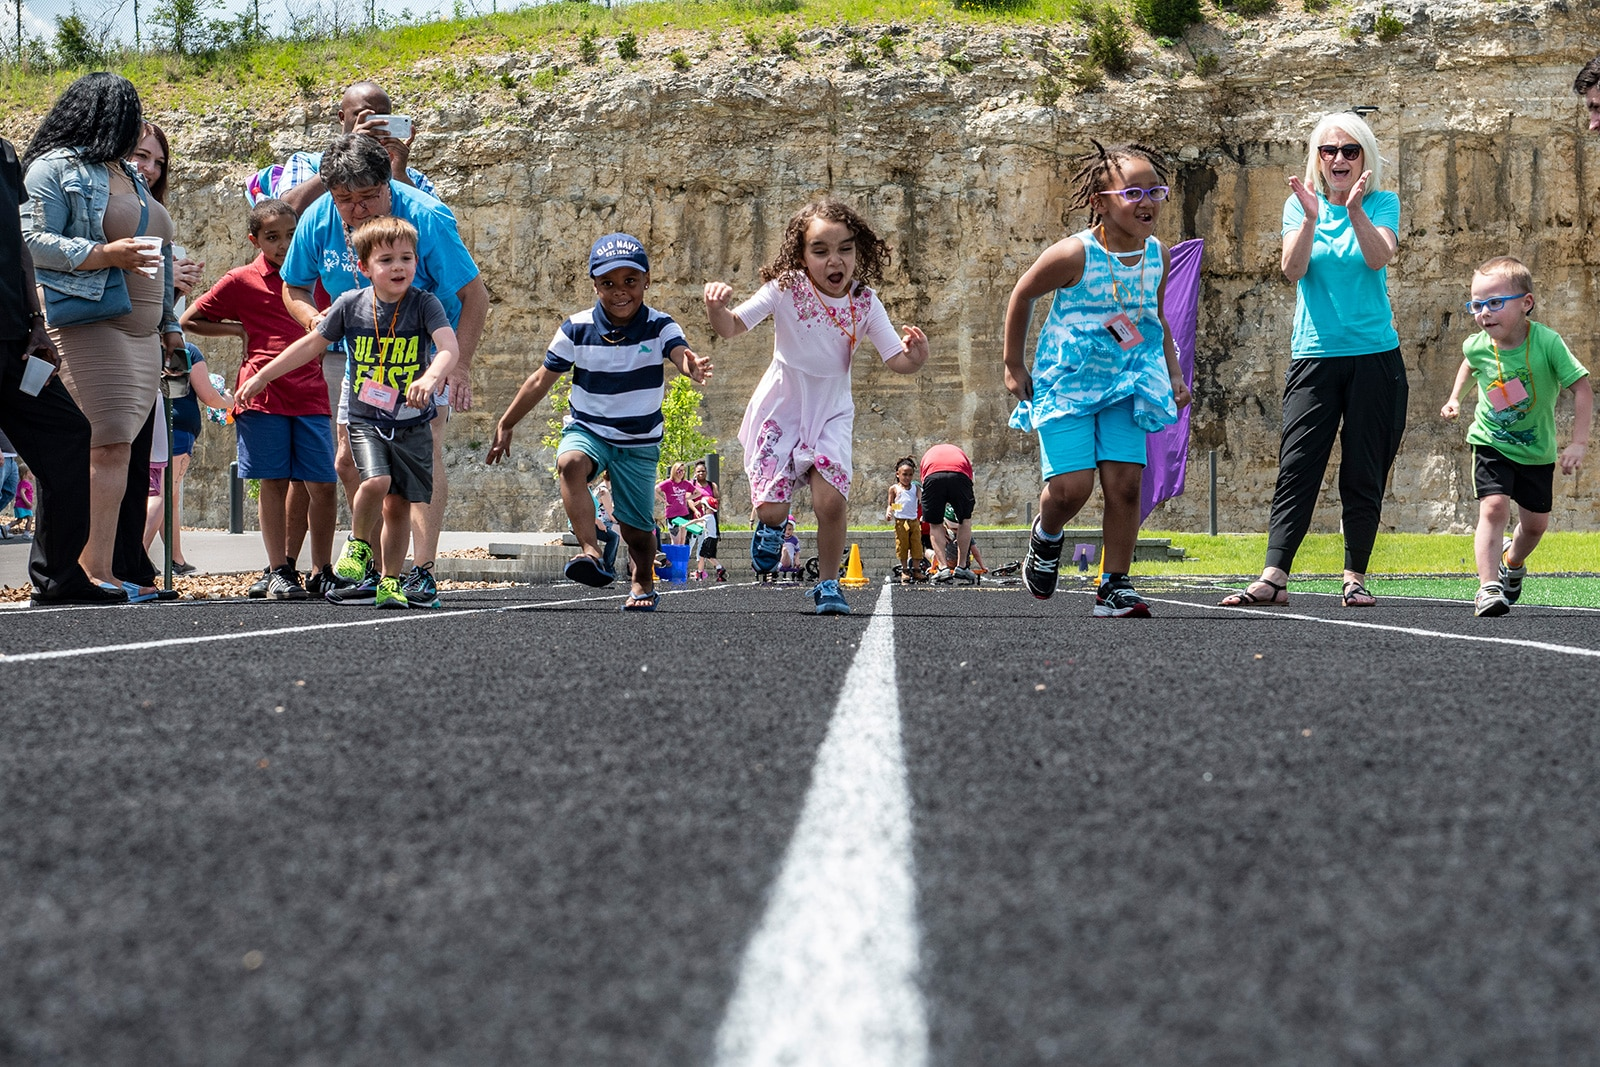 A group of young athletes break off the line during a track race